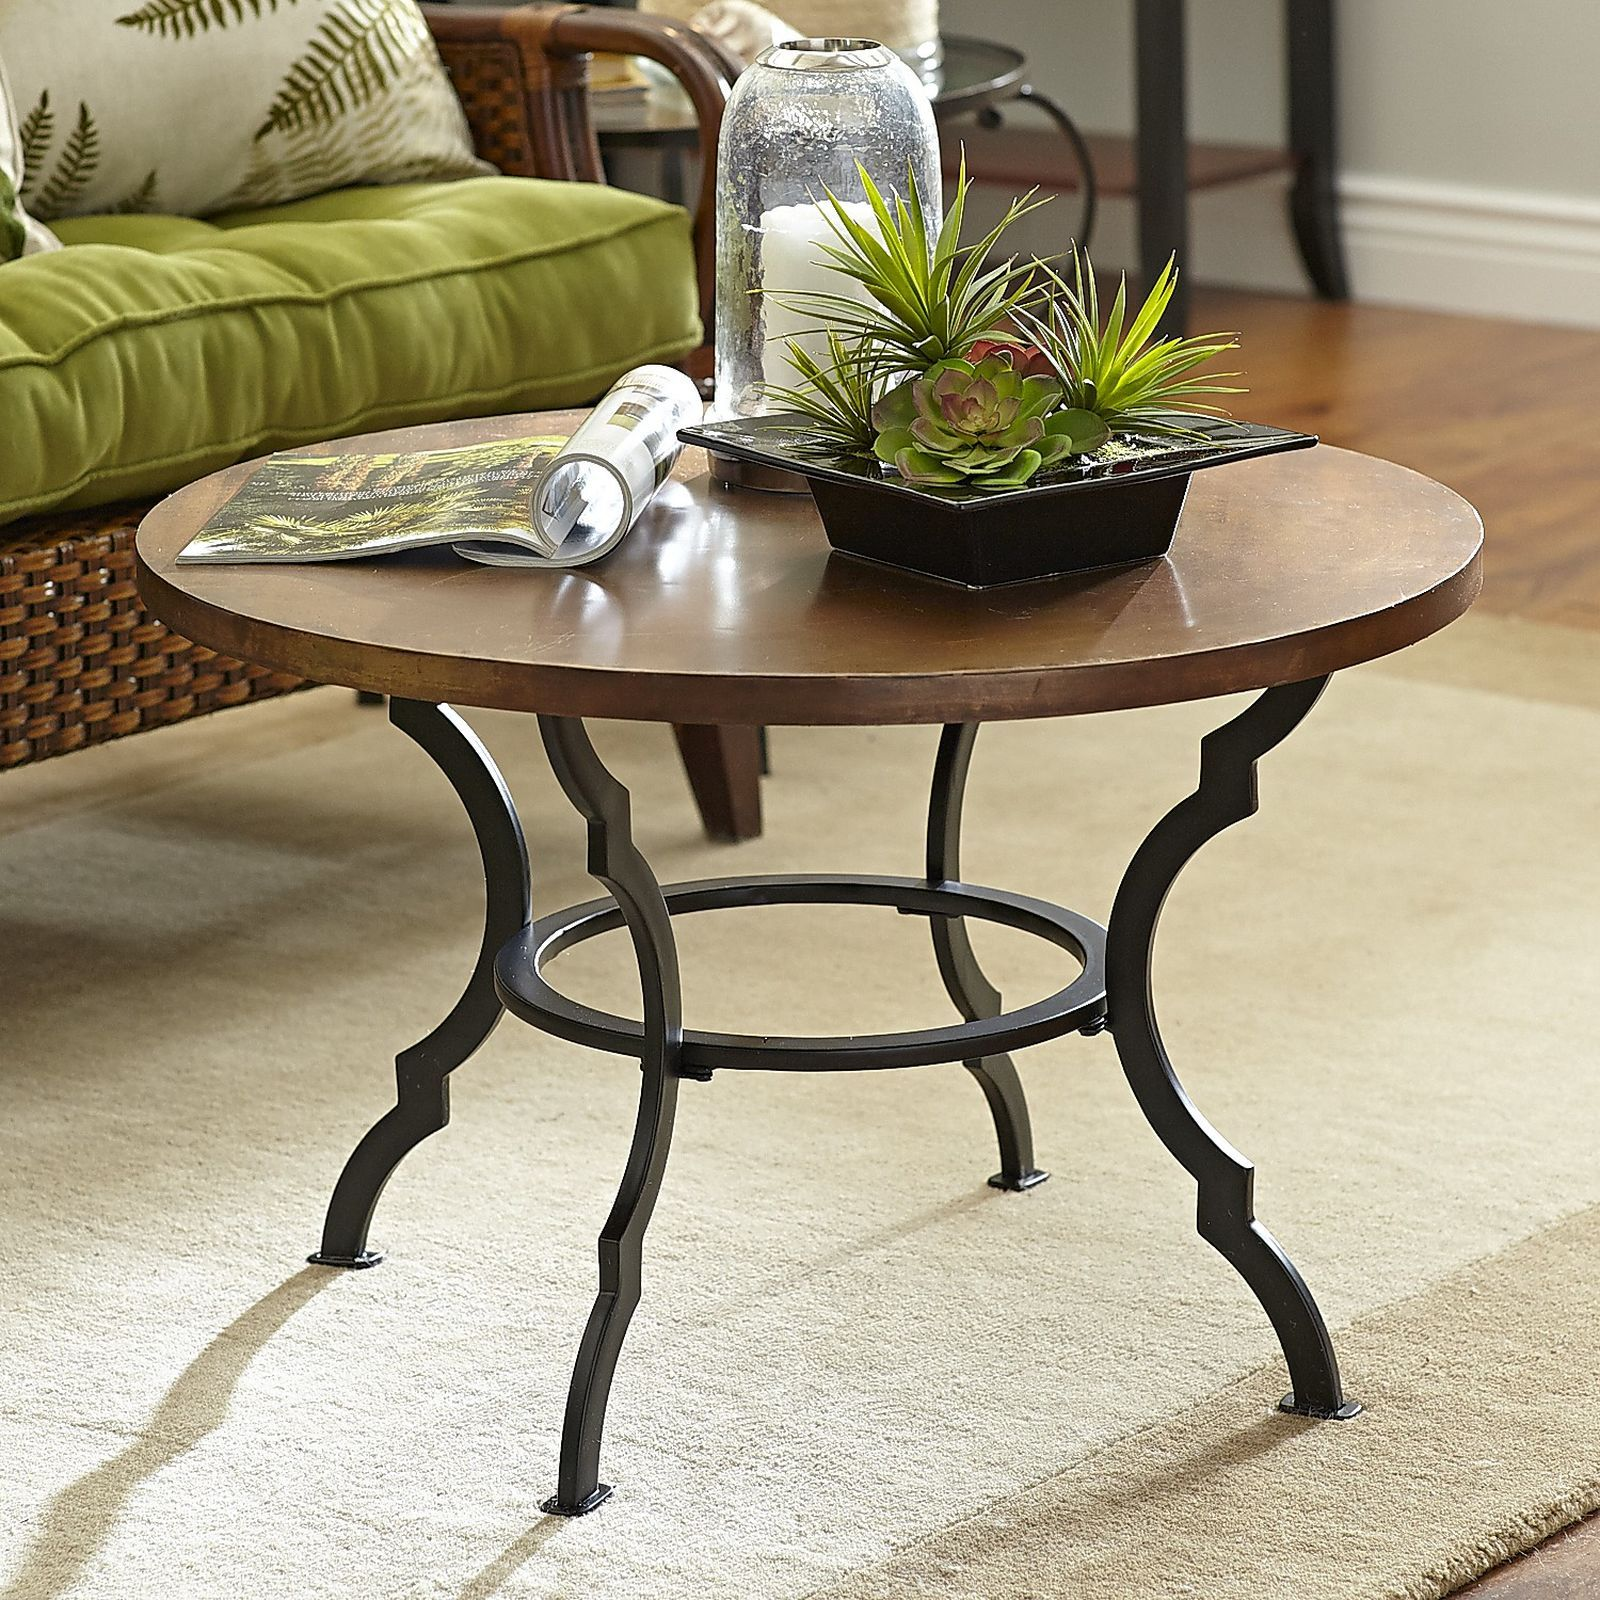 One on clearance at our Pier 1 --- Colton Round Coffee Table | Pier 1 Imports | Round coffee ...